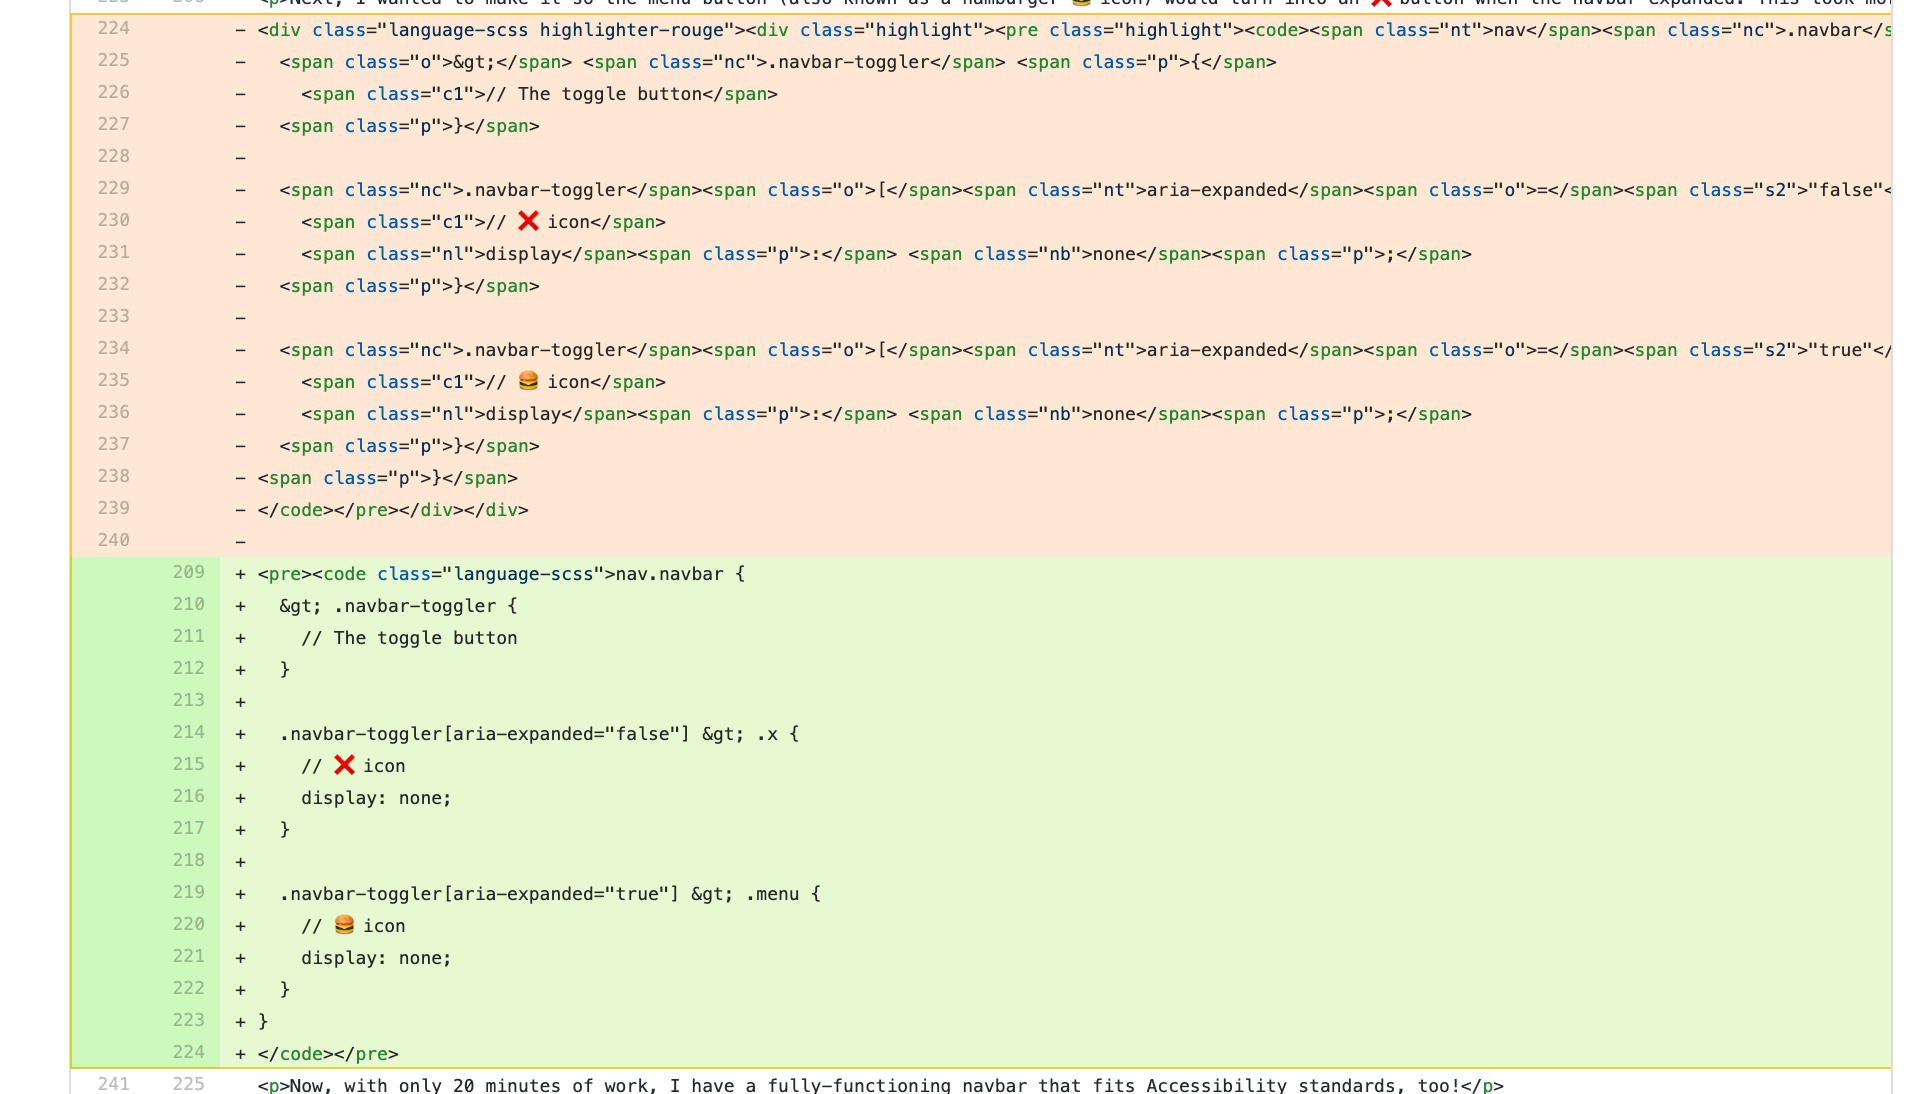 HTML without syntax highlighting